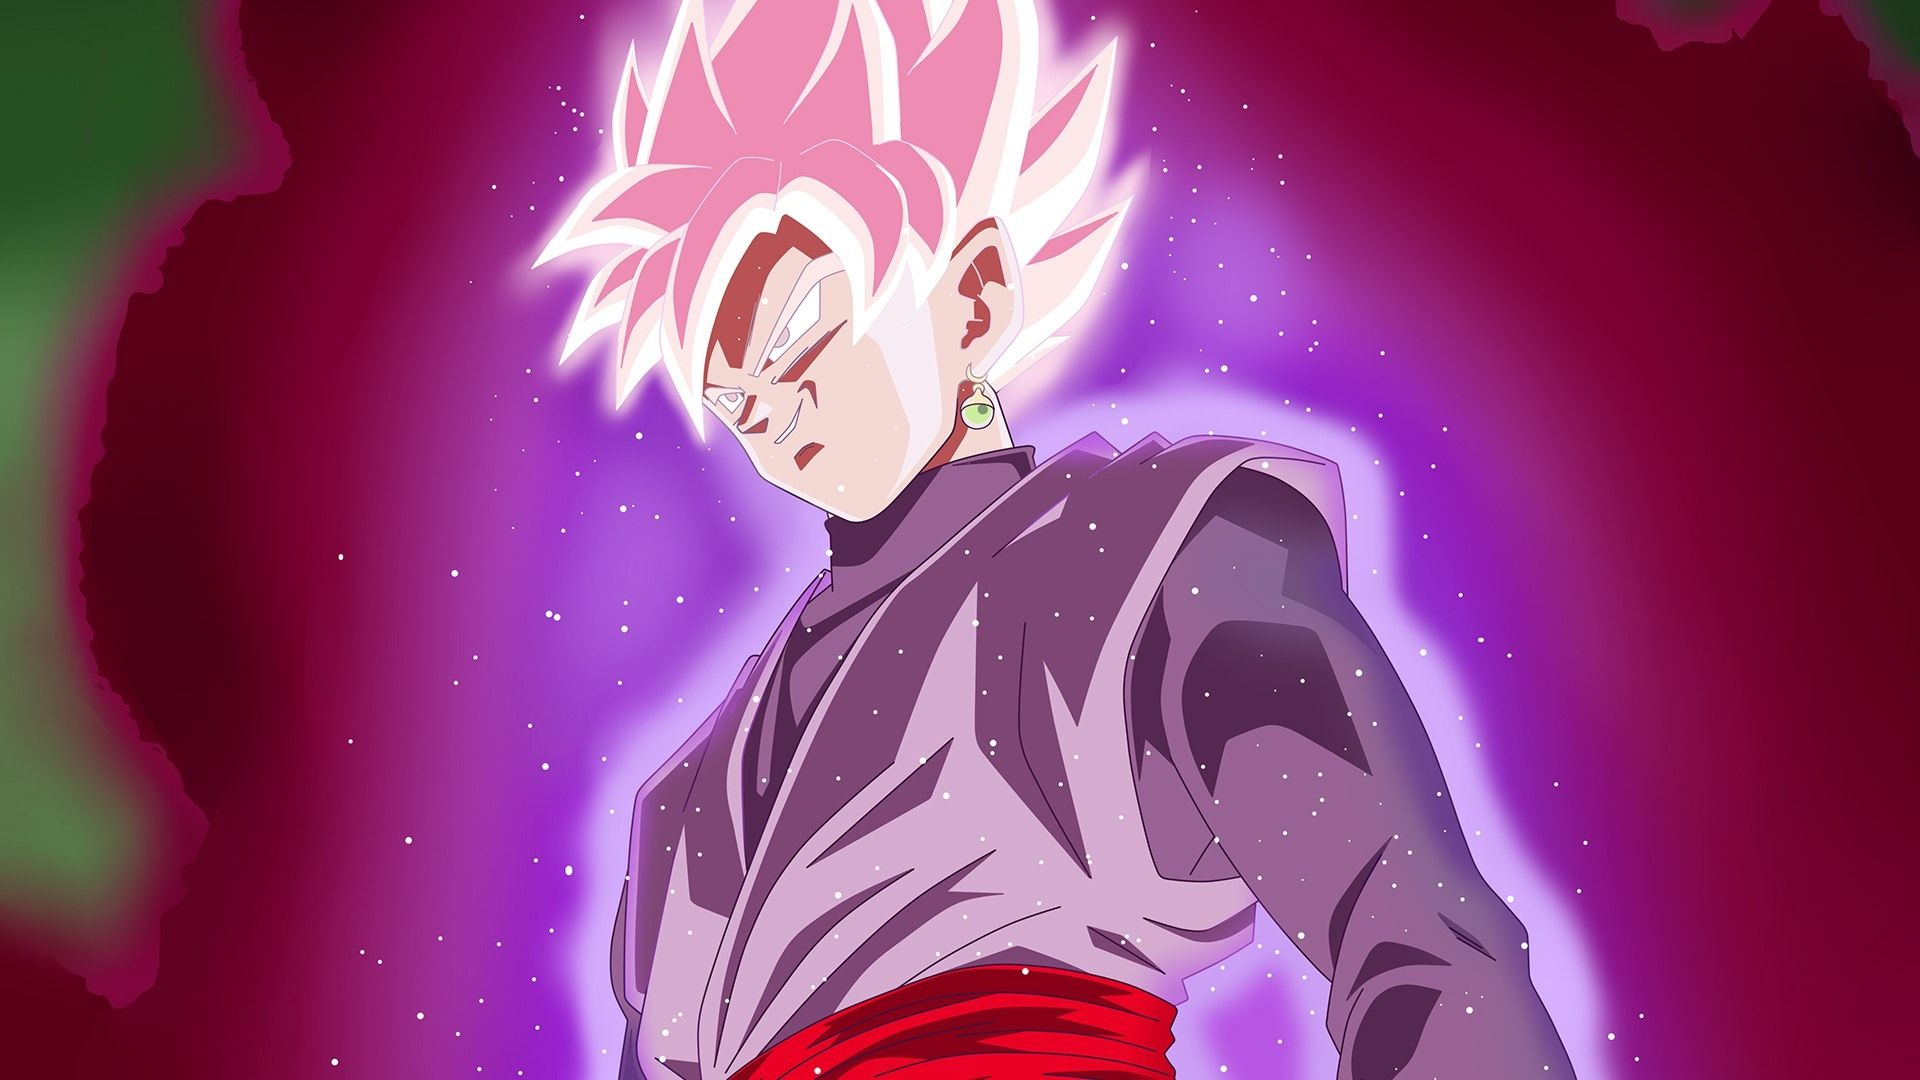 Super Saiyan Rose Goku Black Wallpaper: Black Goku Rose Wallpapers